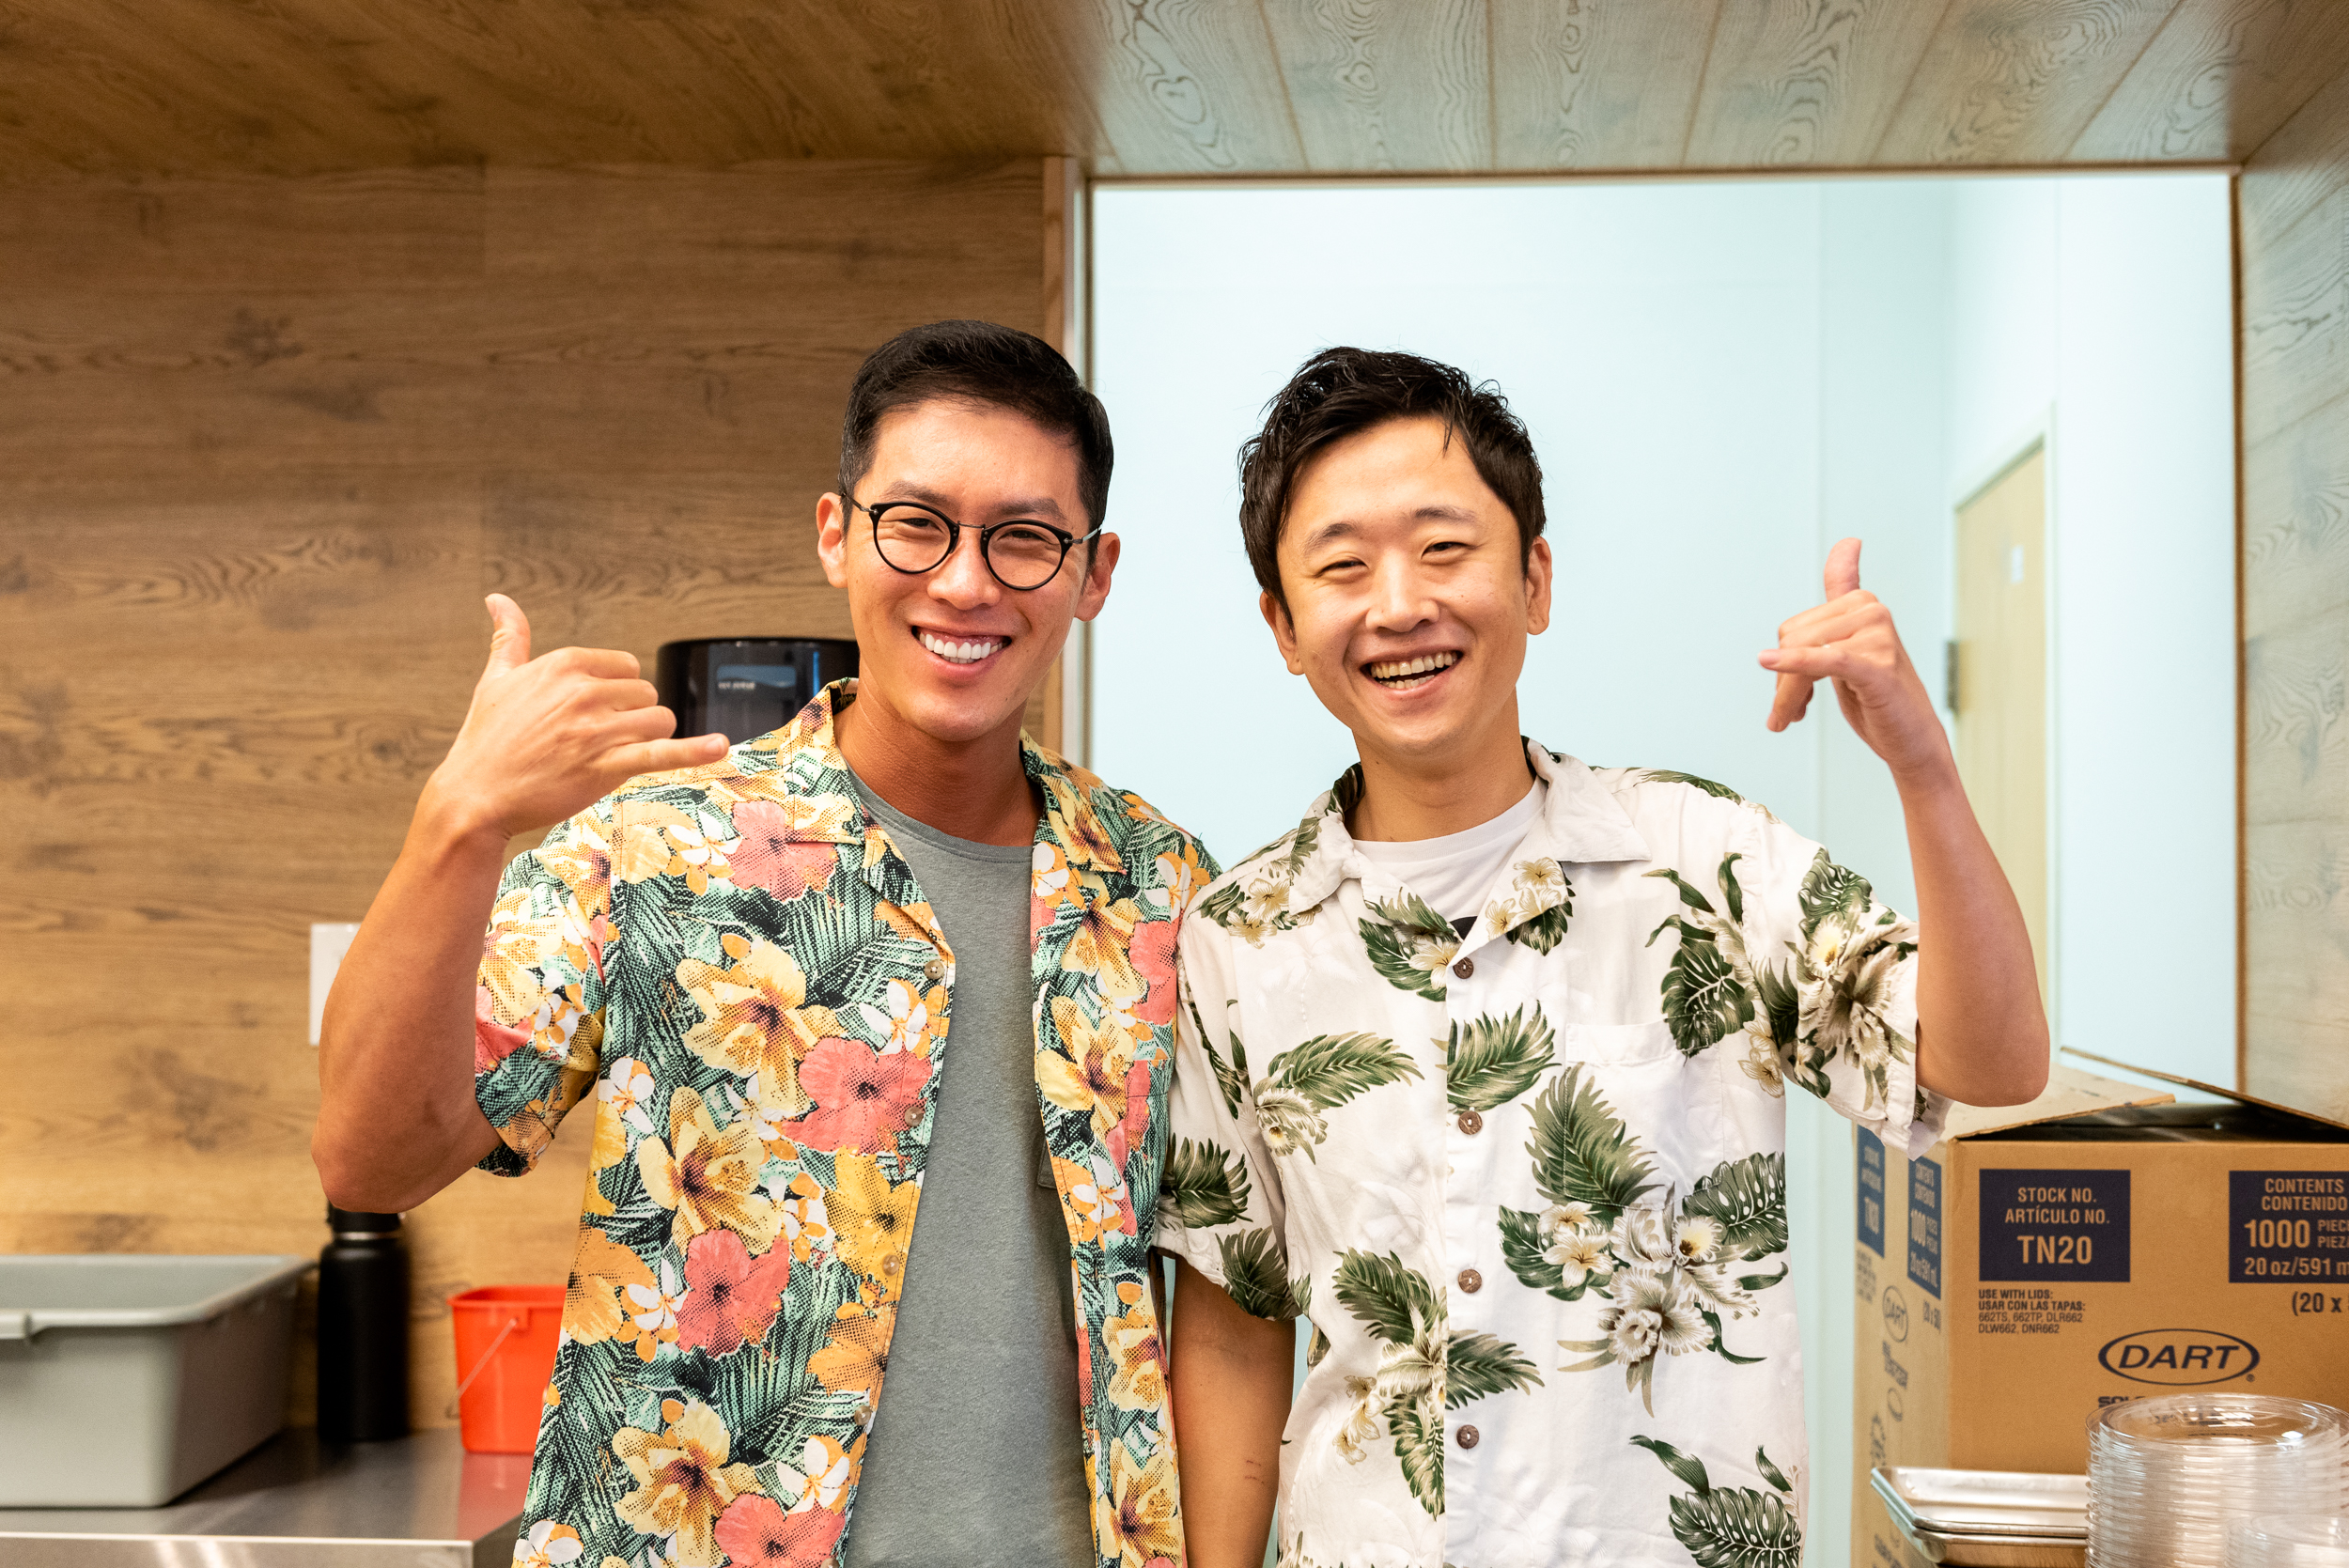 Joke Poke Bar restaurant owner, Justin Hwang, and business partner, Shaun